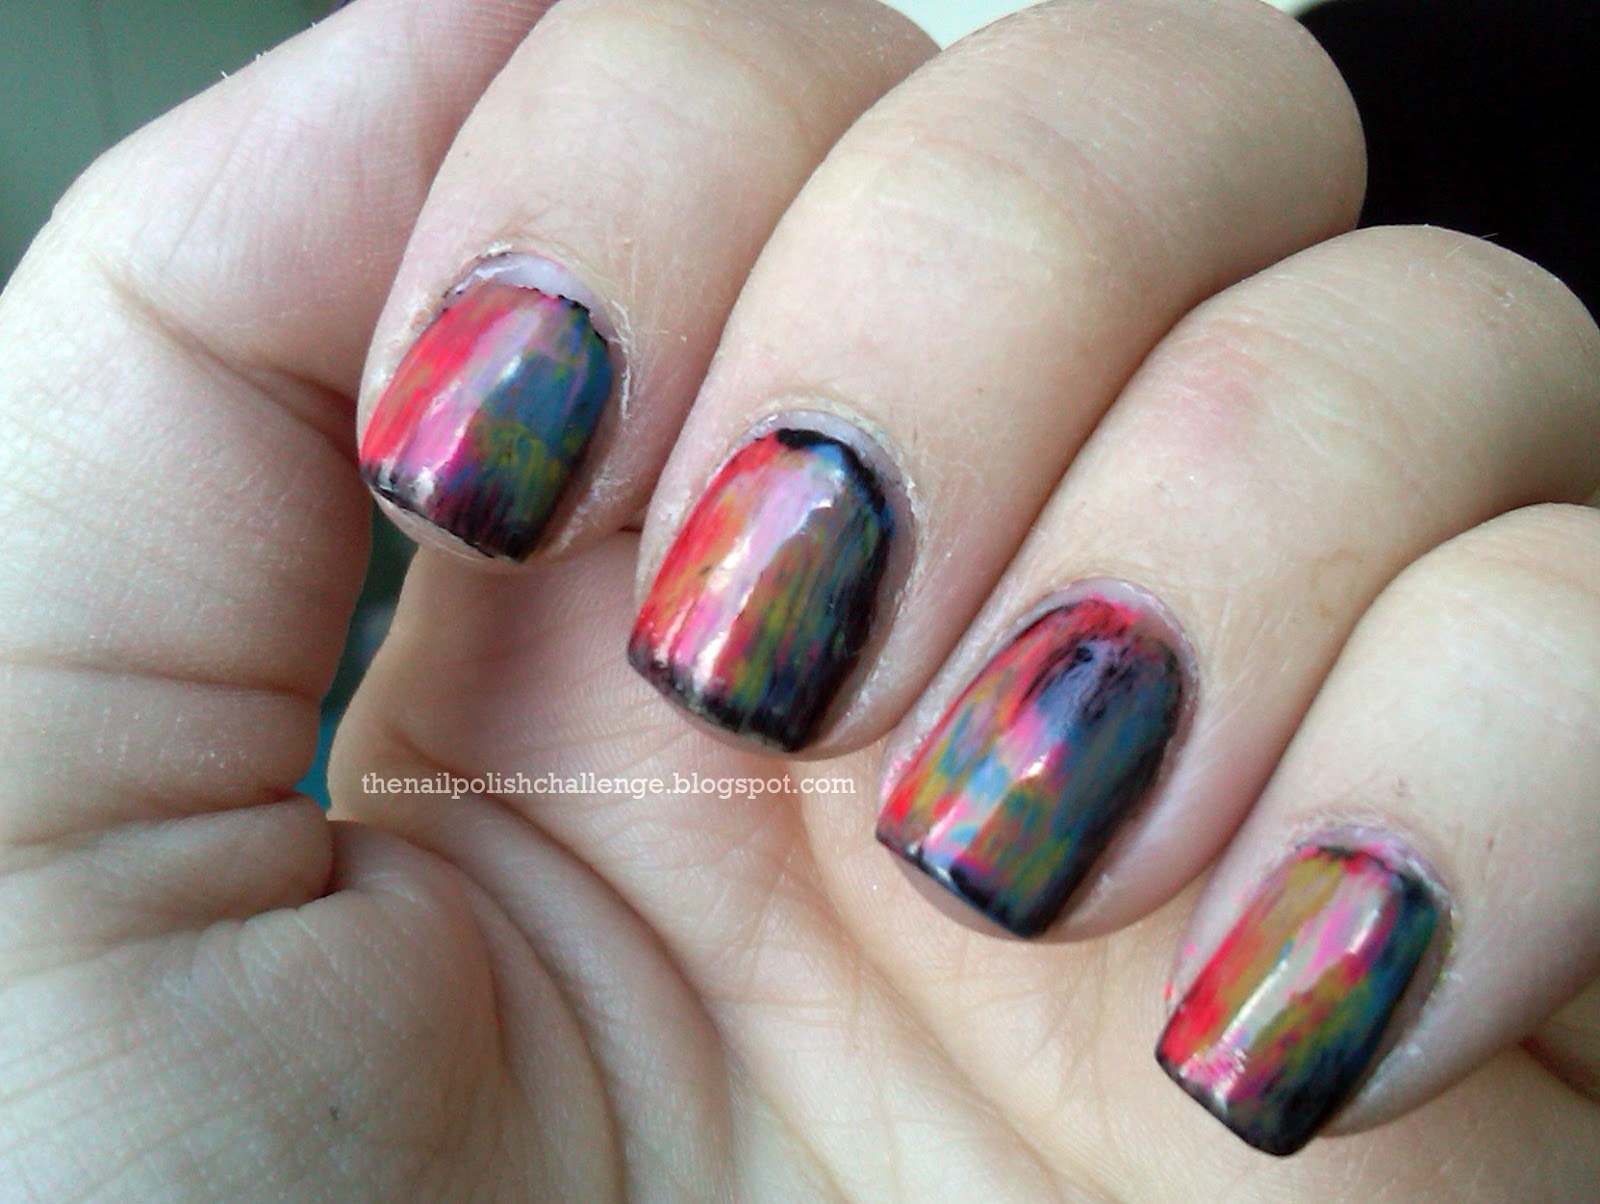 How to paint nails for fengshui